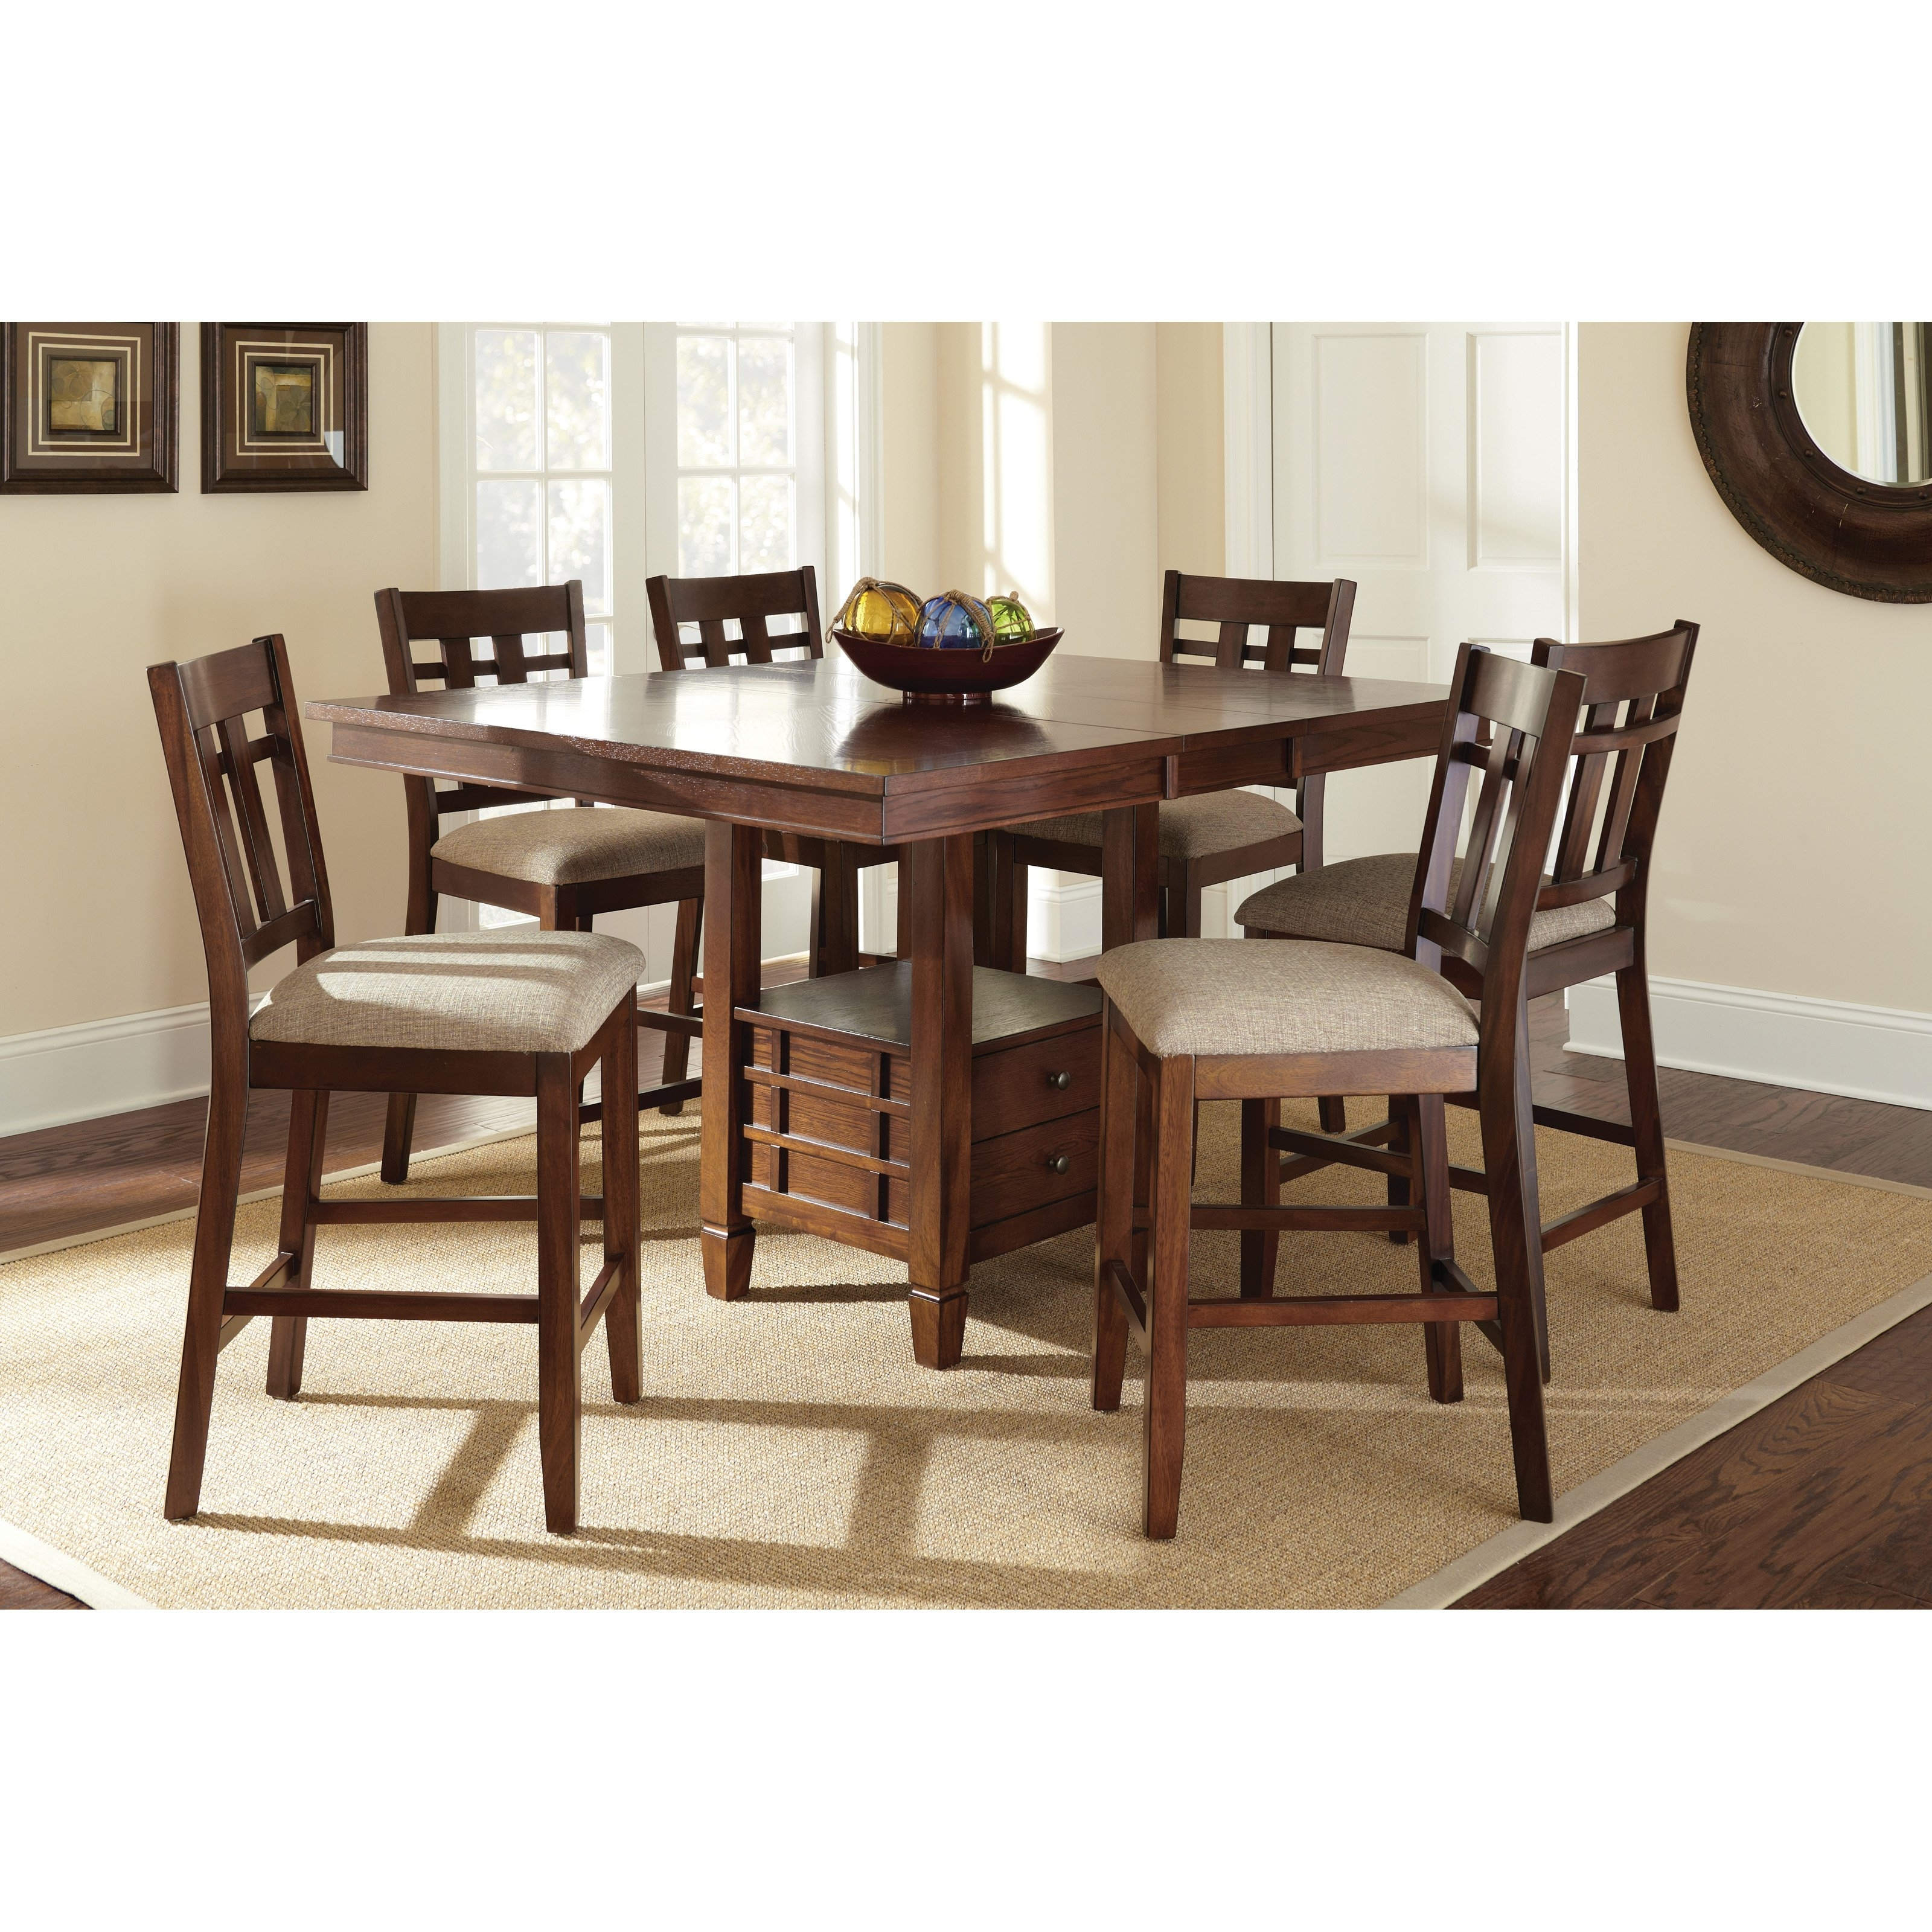 Steve Silver Bolton 7 Piece Counter Height Storage Dining Table Set For Current Candice Ii 7 Piece Extension Rectangle Dining Sets (View 10 of 20)